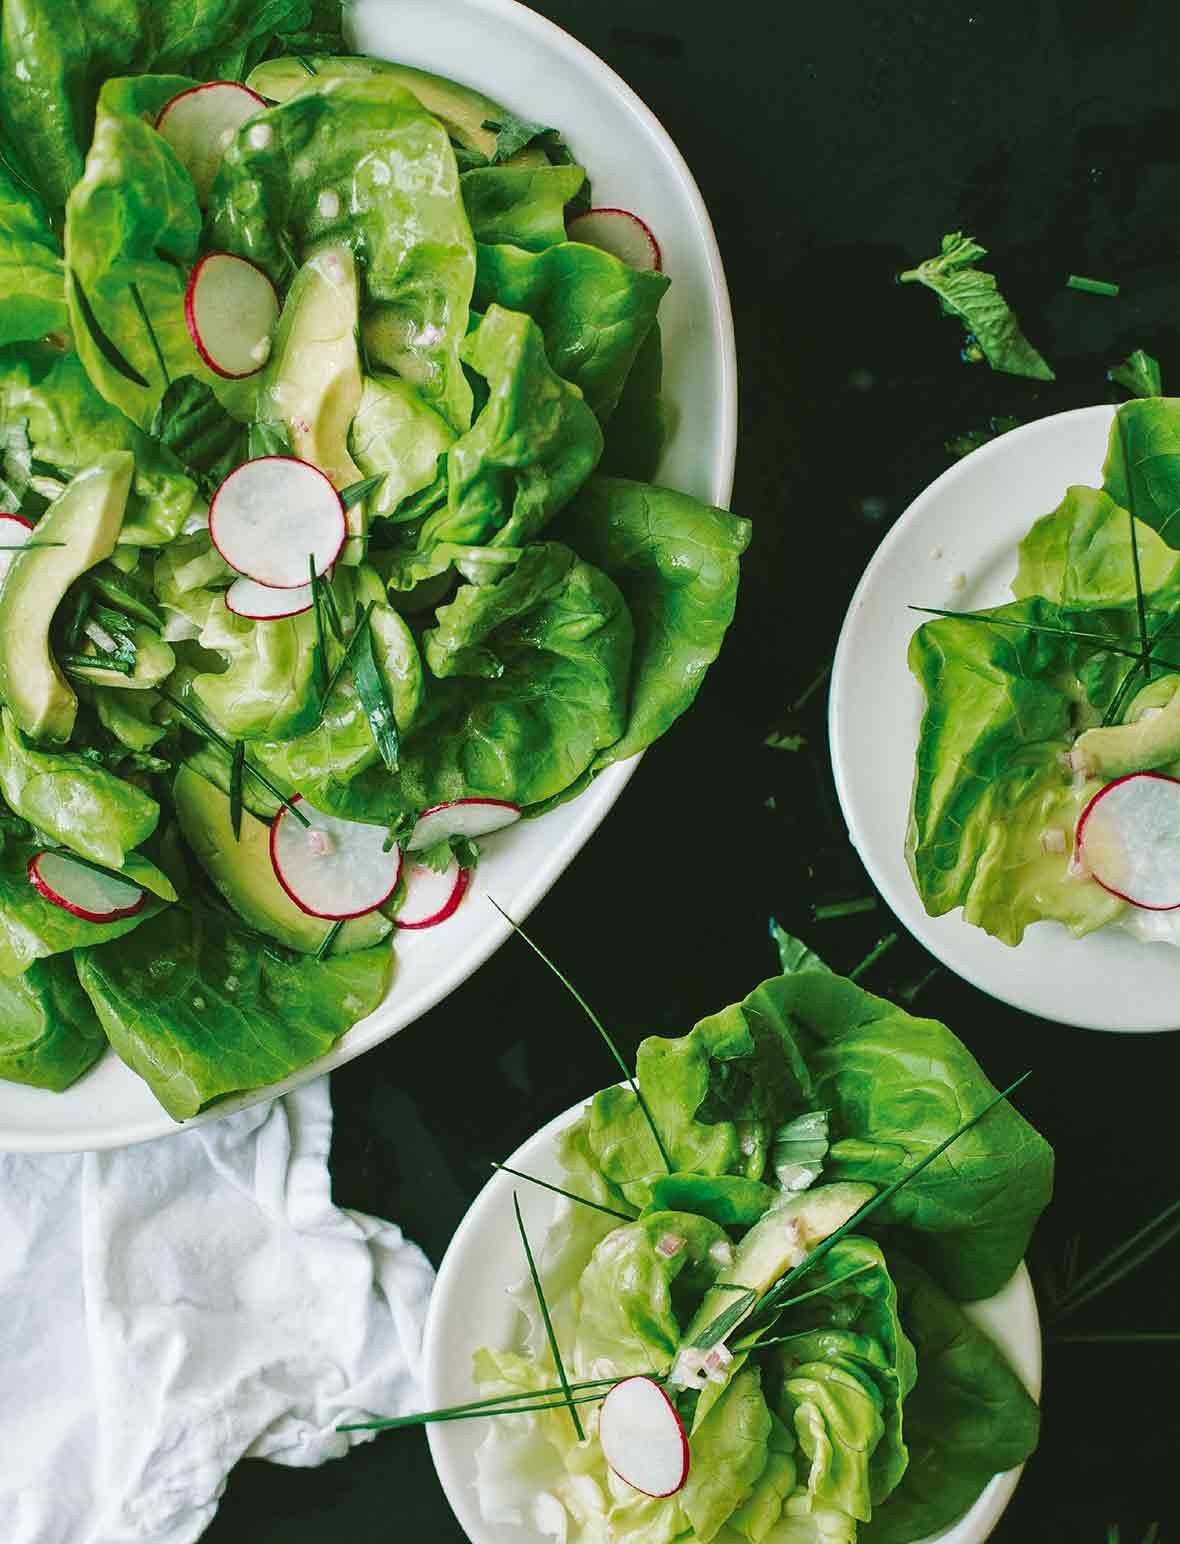 Spring salad with creamy shallot vinaigrette with sliced radishes, avocados, and chives on three plates